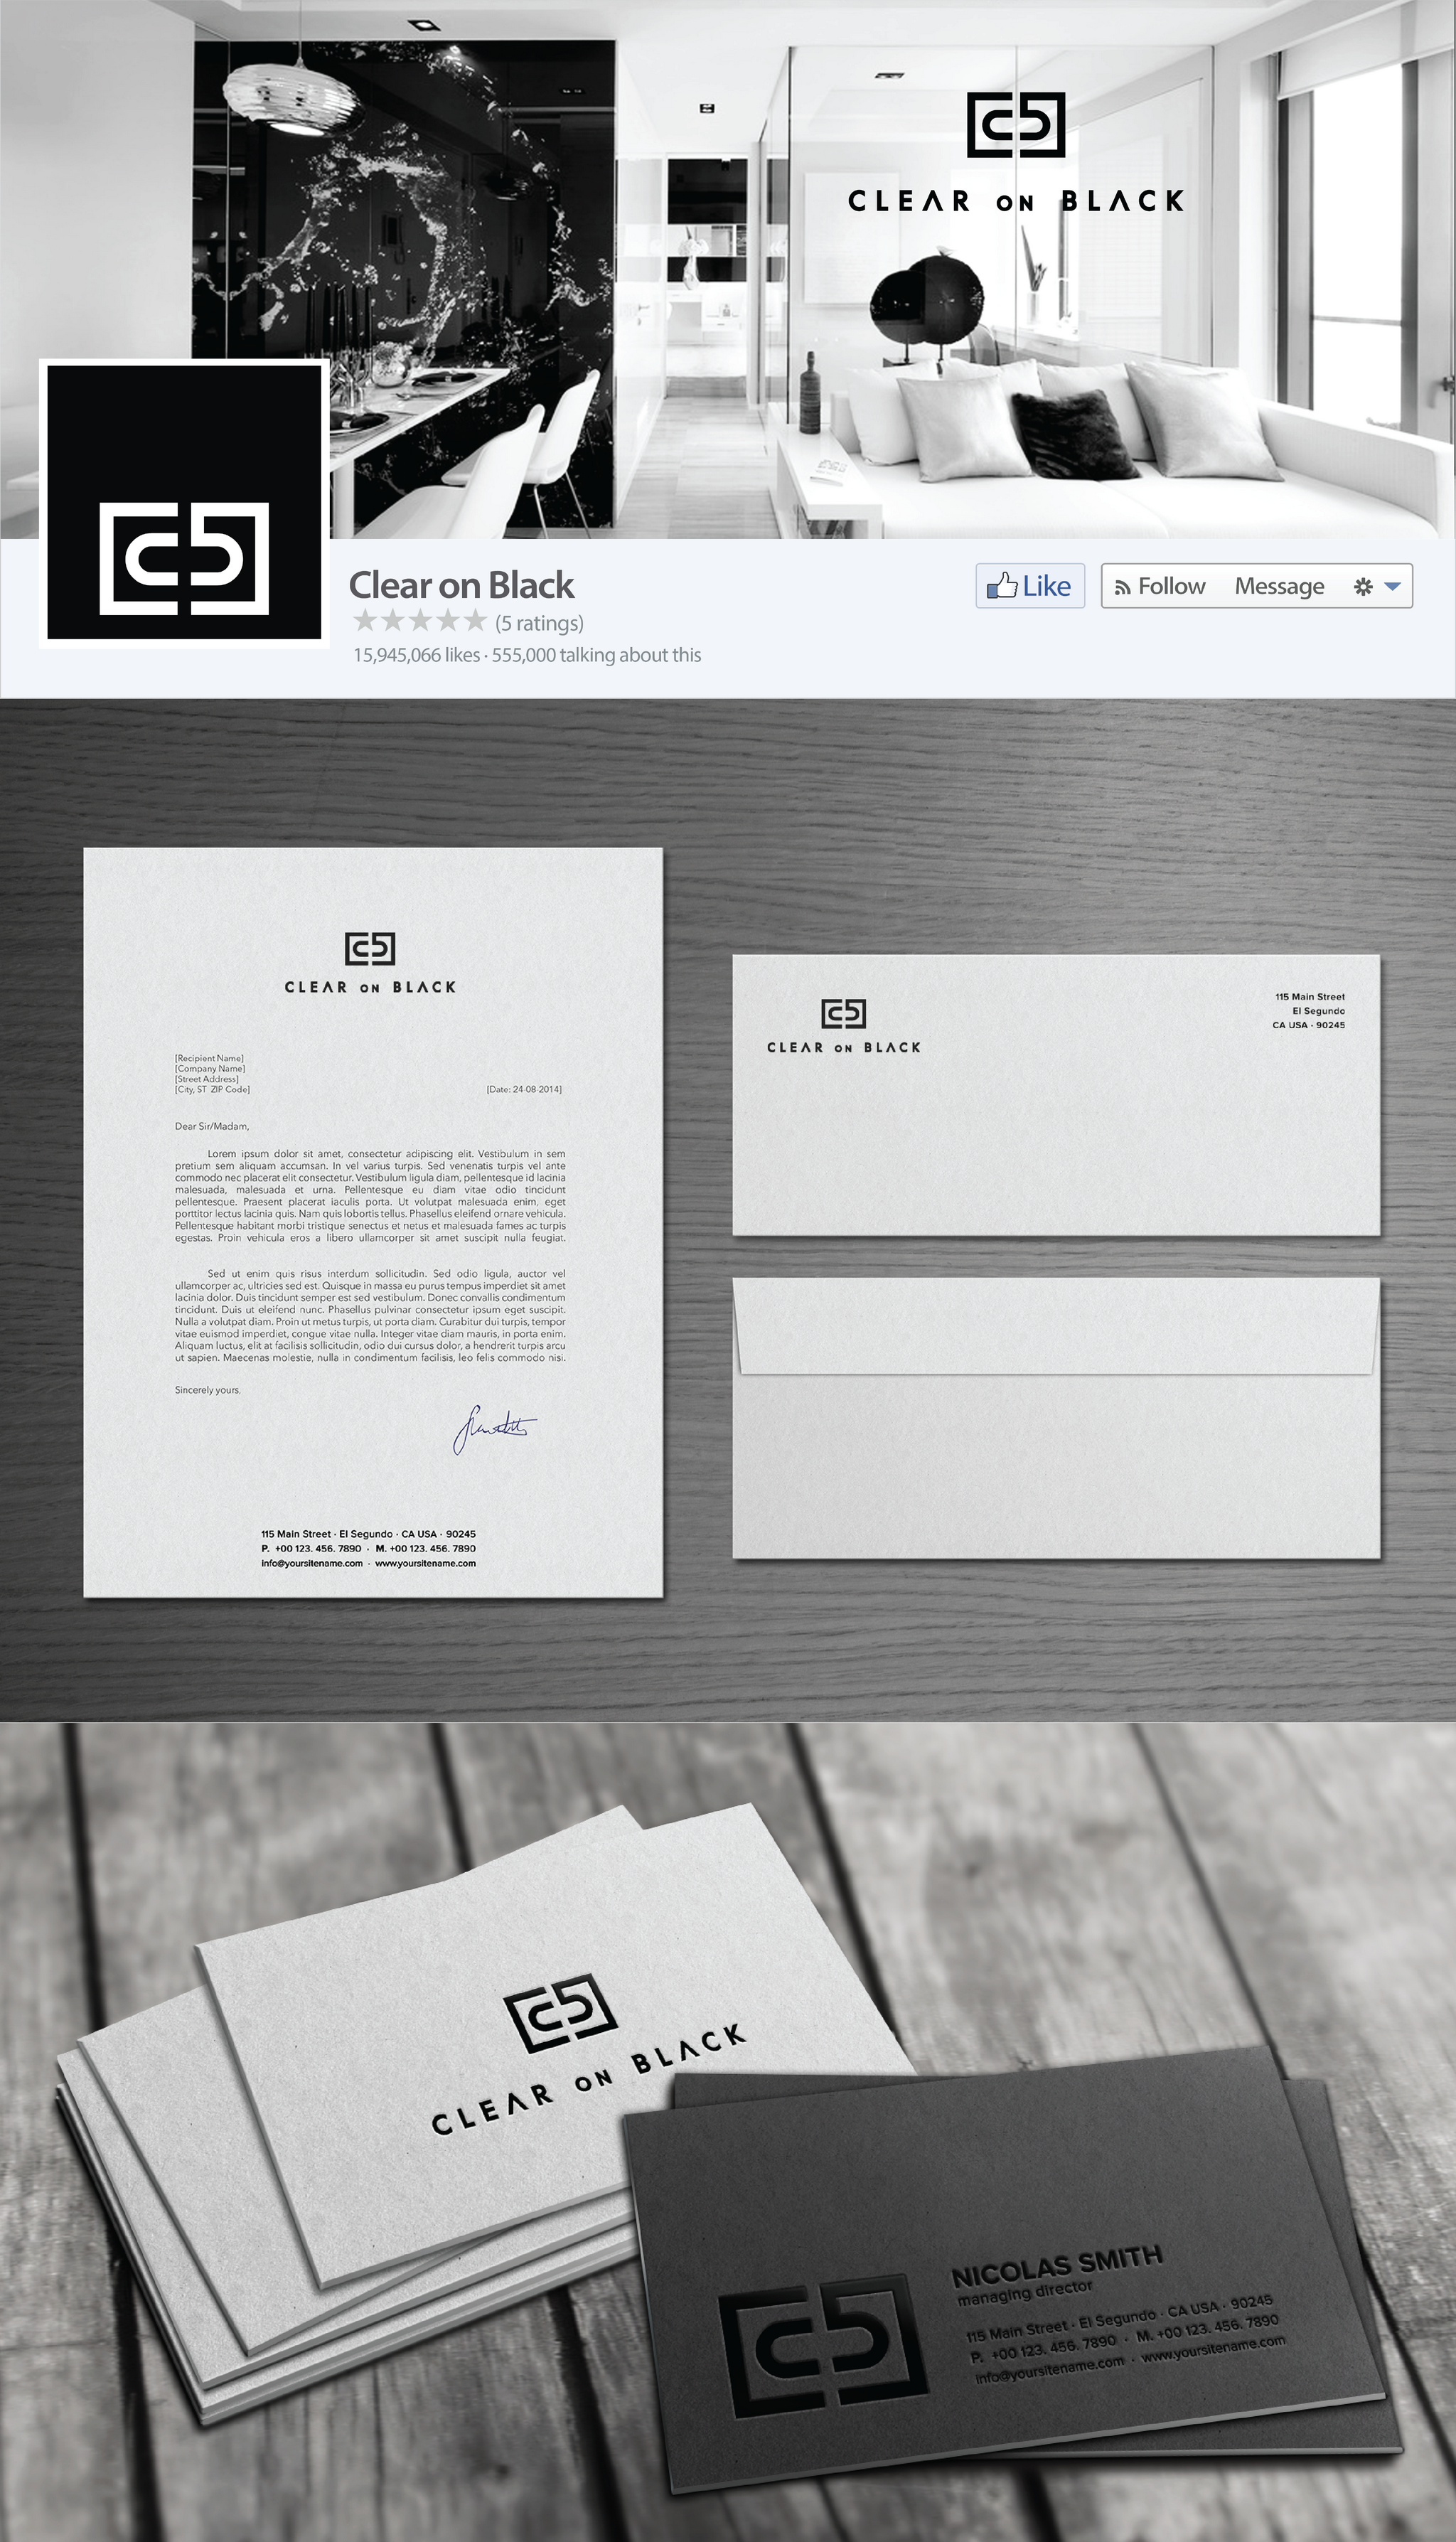 Brand Identity Package for an international hospitality design firm (logo already provided)